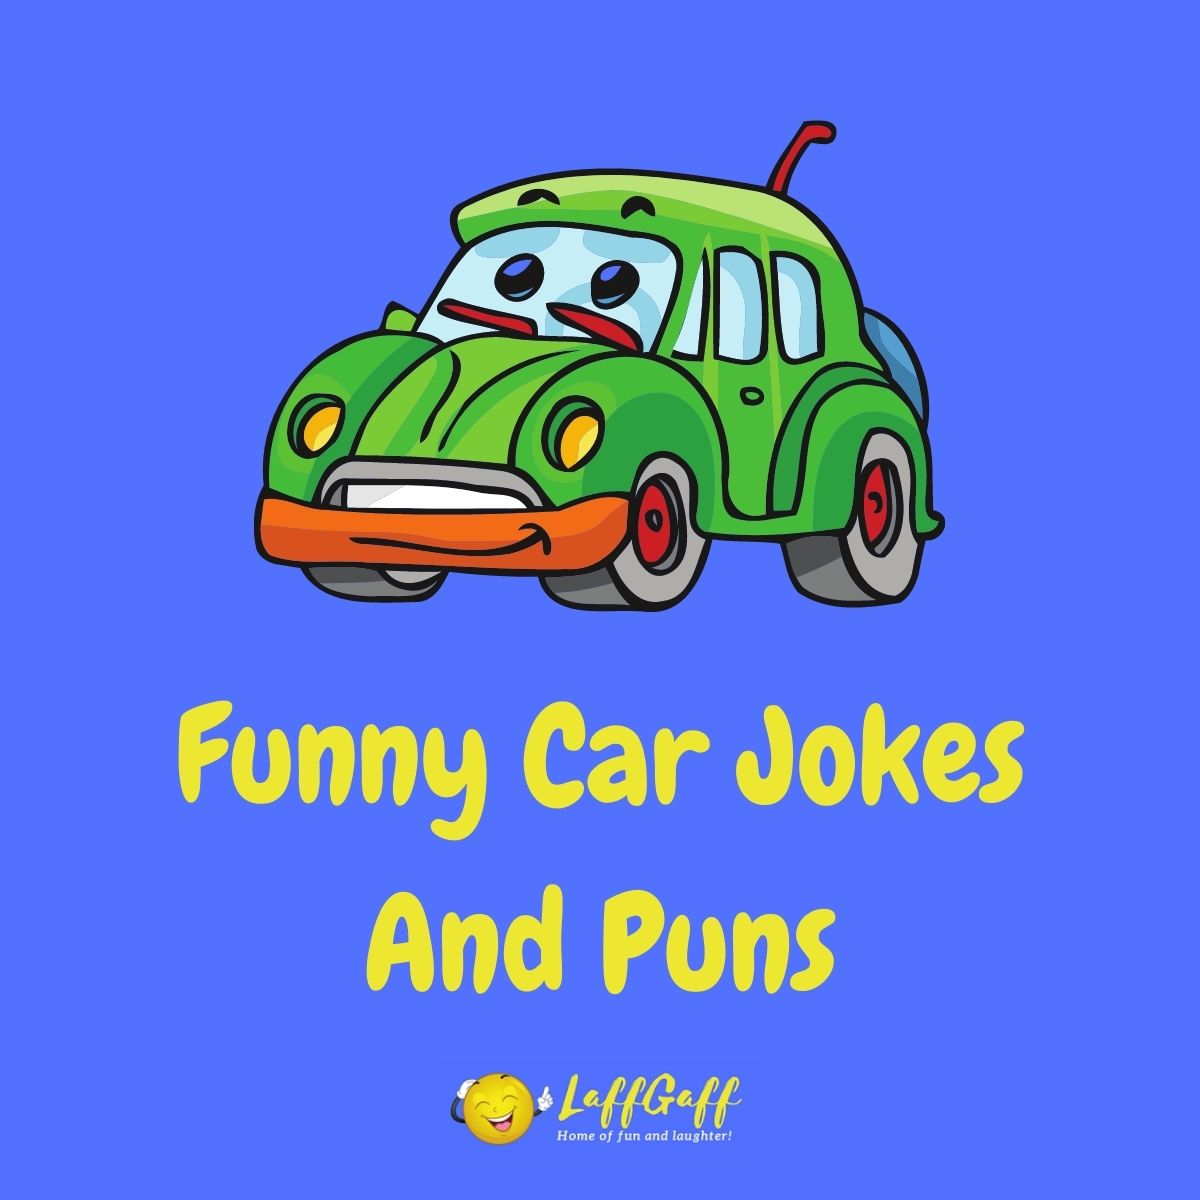 Featured image for a page of funny car jokes and puns.